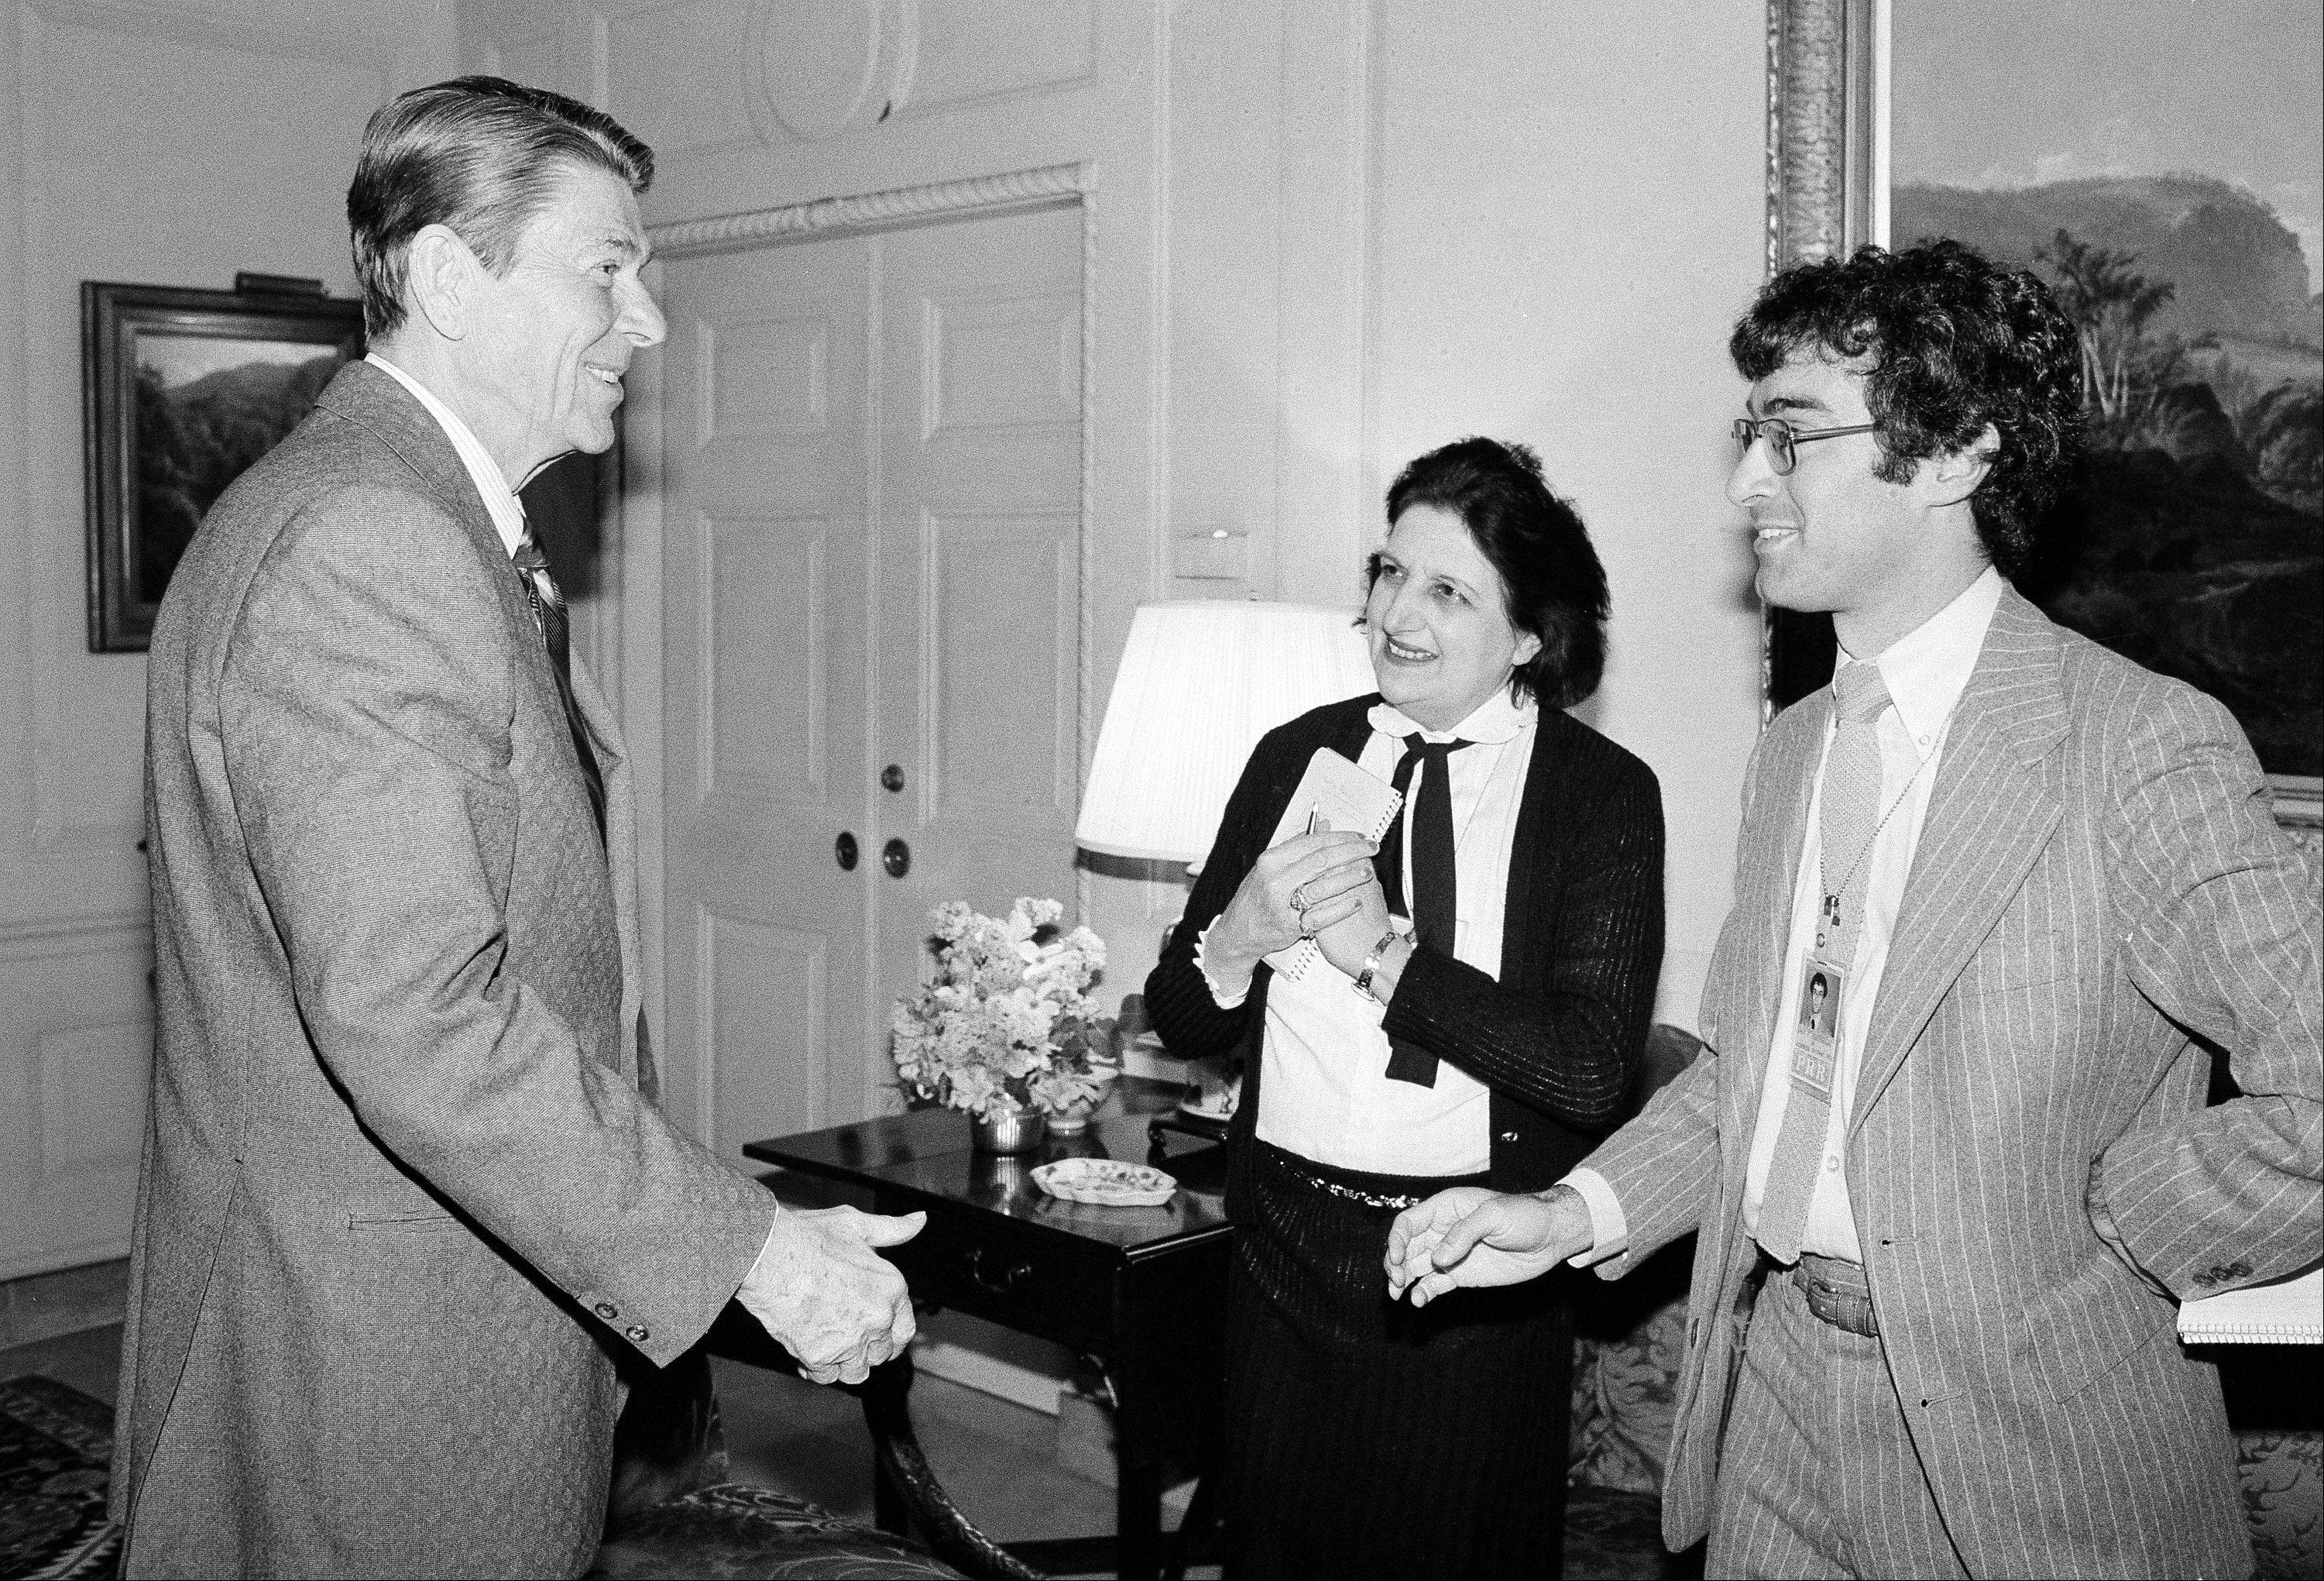 Associated PressIn this April 13, 1981, file photo, President Ronald Reagan greets UPI reporter Helen Thomas, center, and AP reporter Jim Gerstenzang, right, before an interview in the Treaty Room of the White House in Washington. Thomas, a pioneer for women in journalism and an irrepressible White House correspondent, has died Saturday, July 20. She was 92.